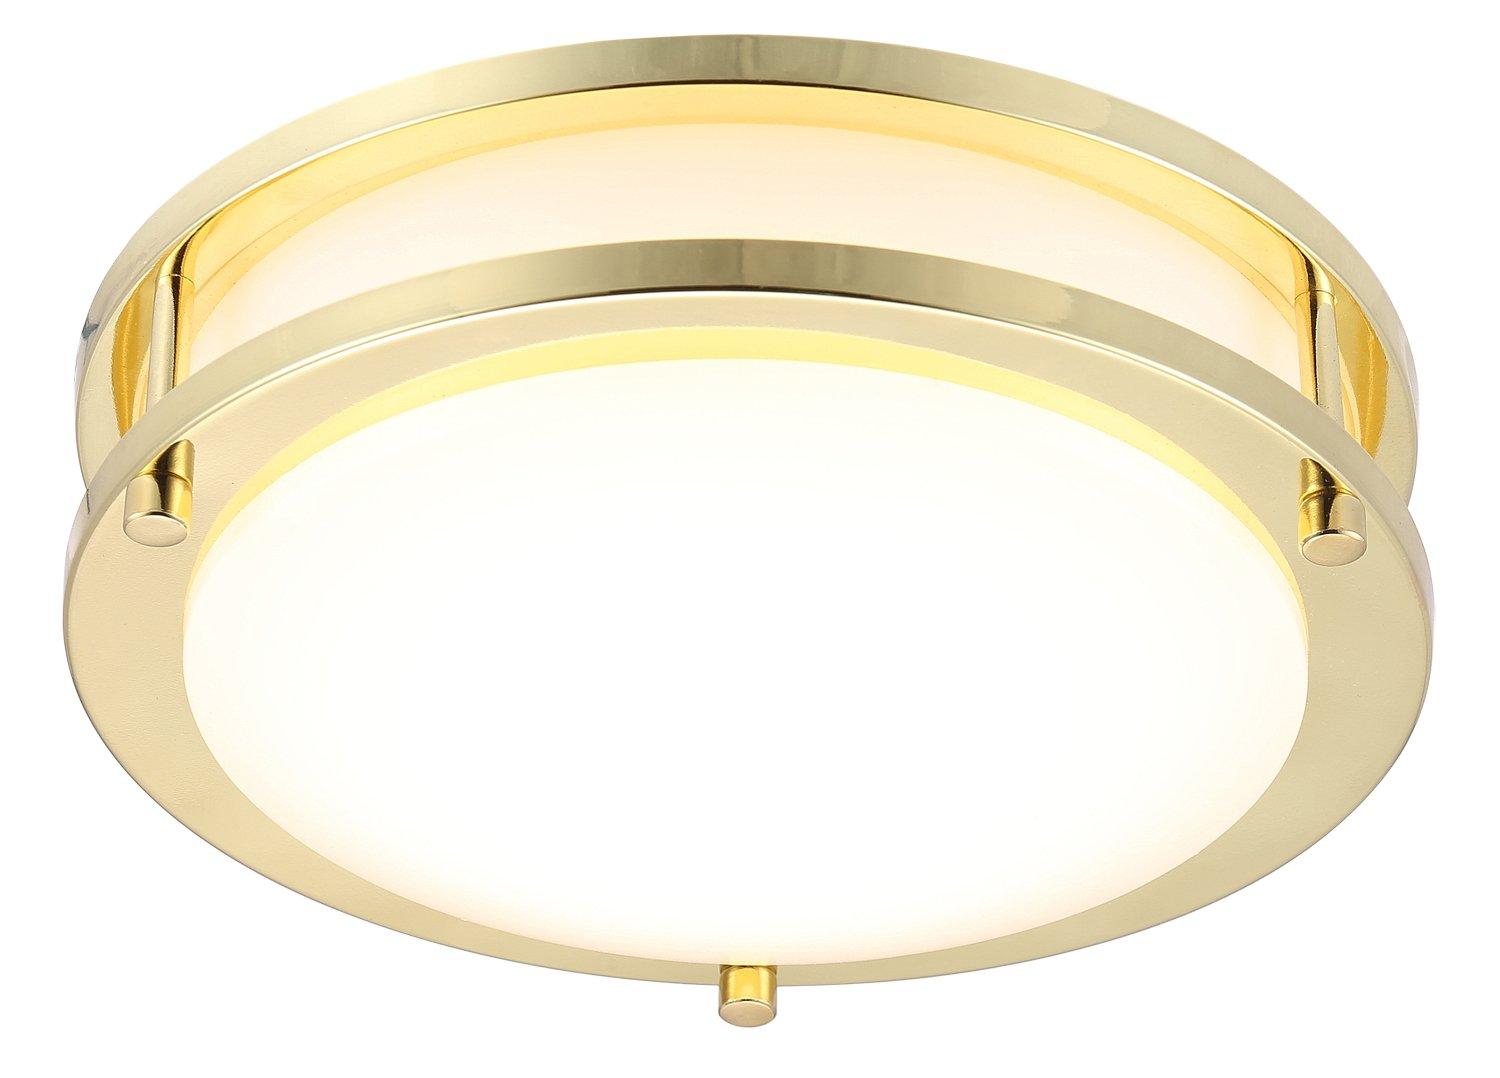 Cloudy bay led flush mount ceiling light 10 inch 17w 120w - Flush mount bathroom ceiling lights ...